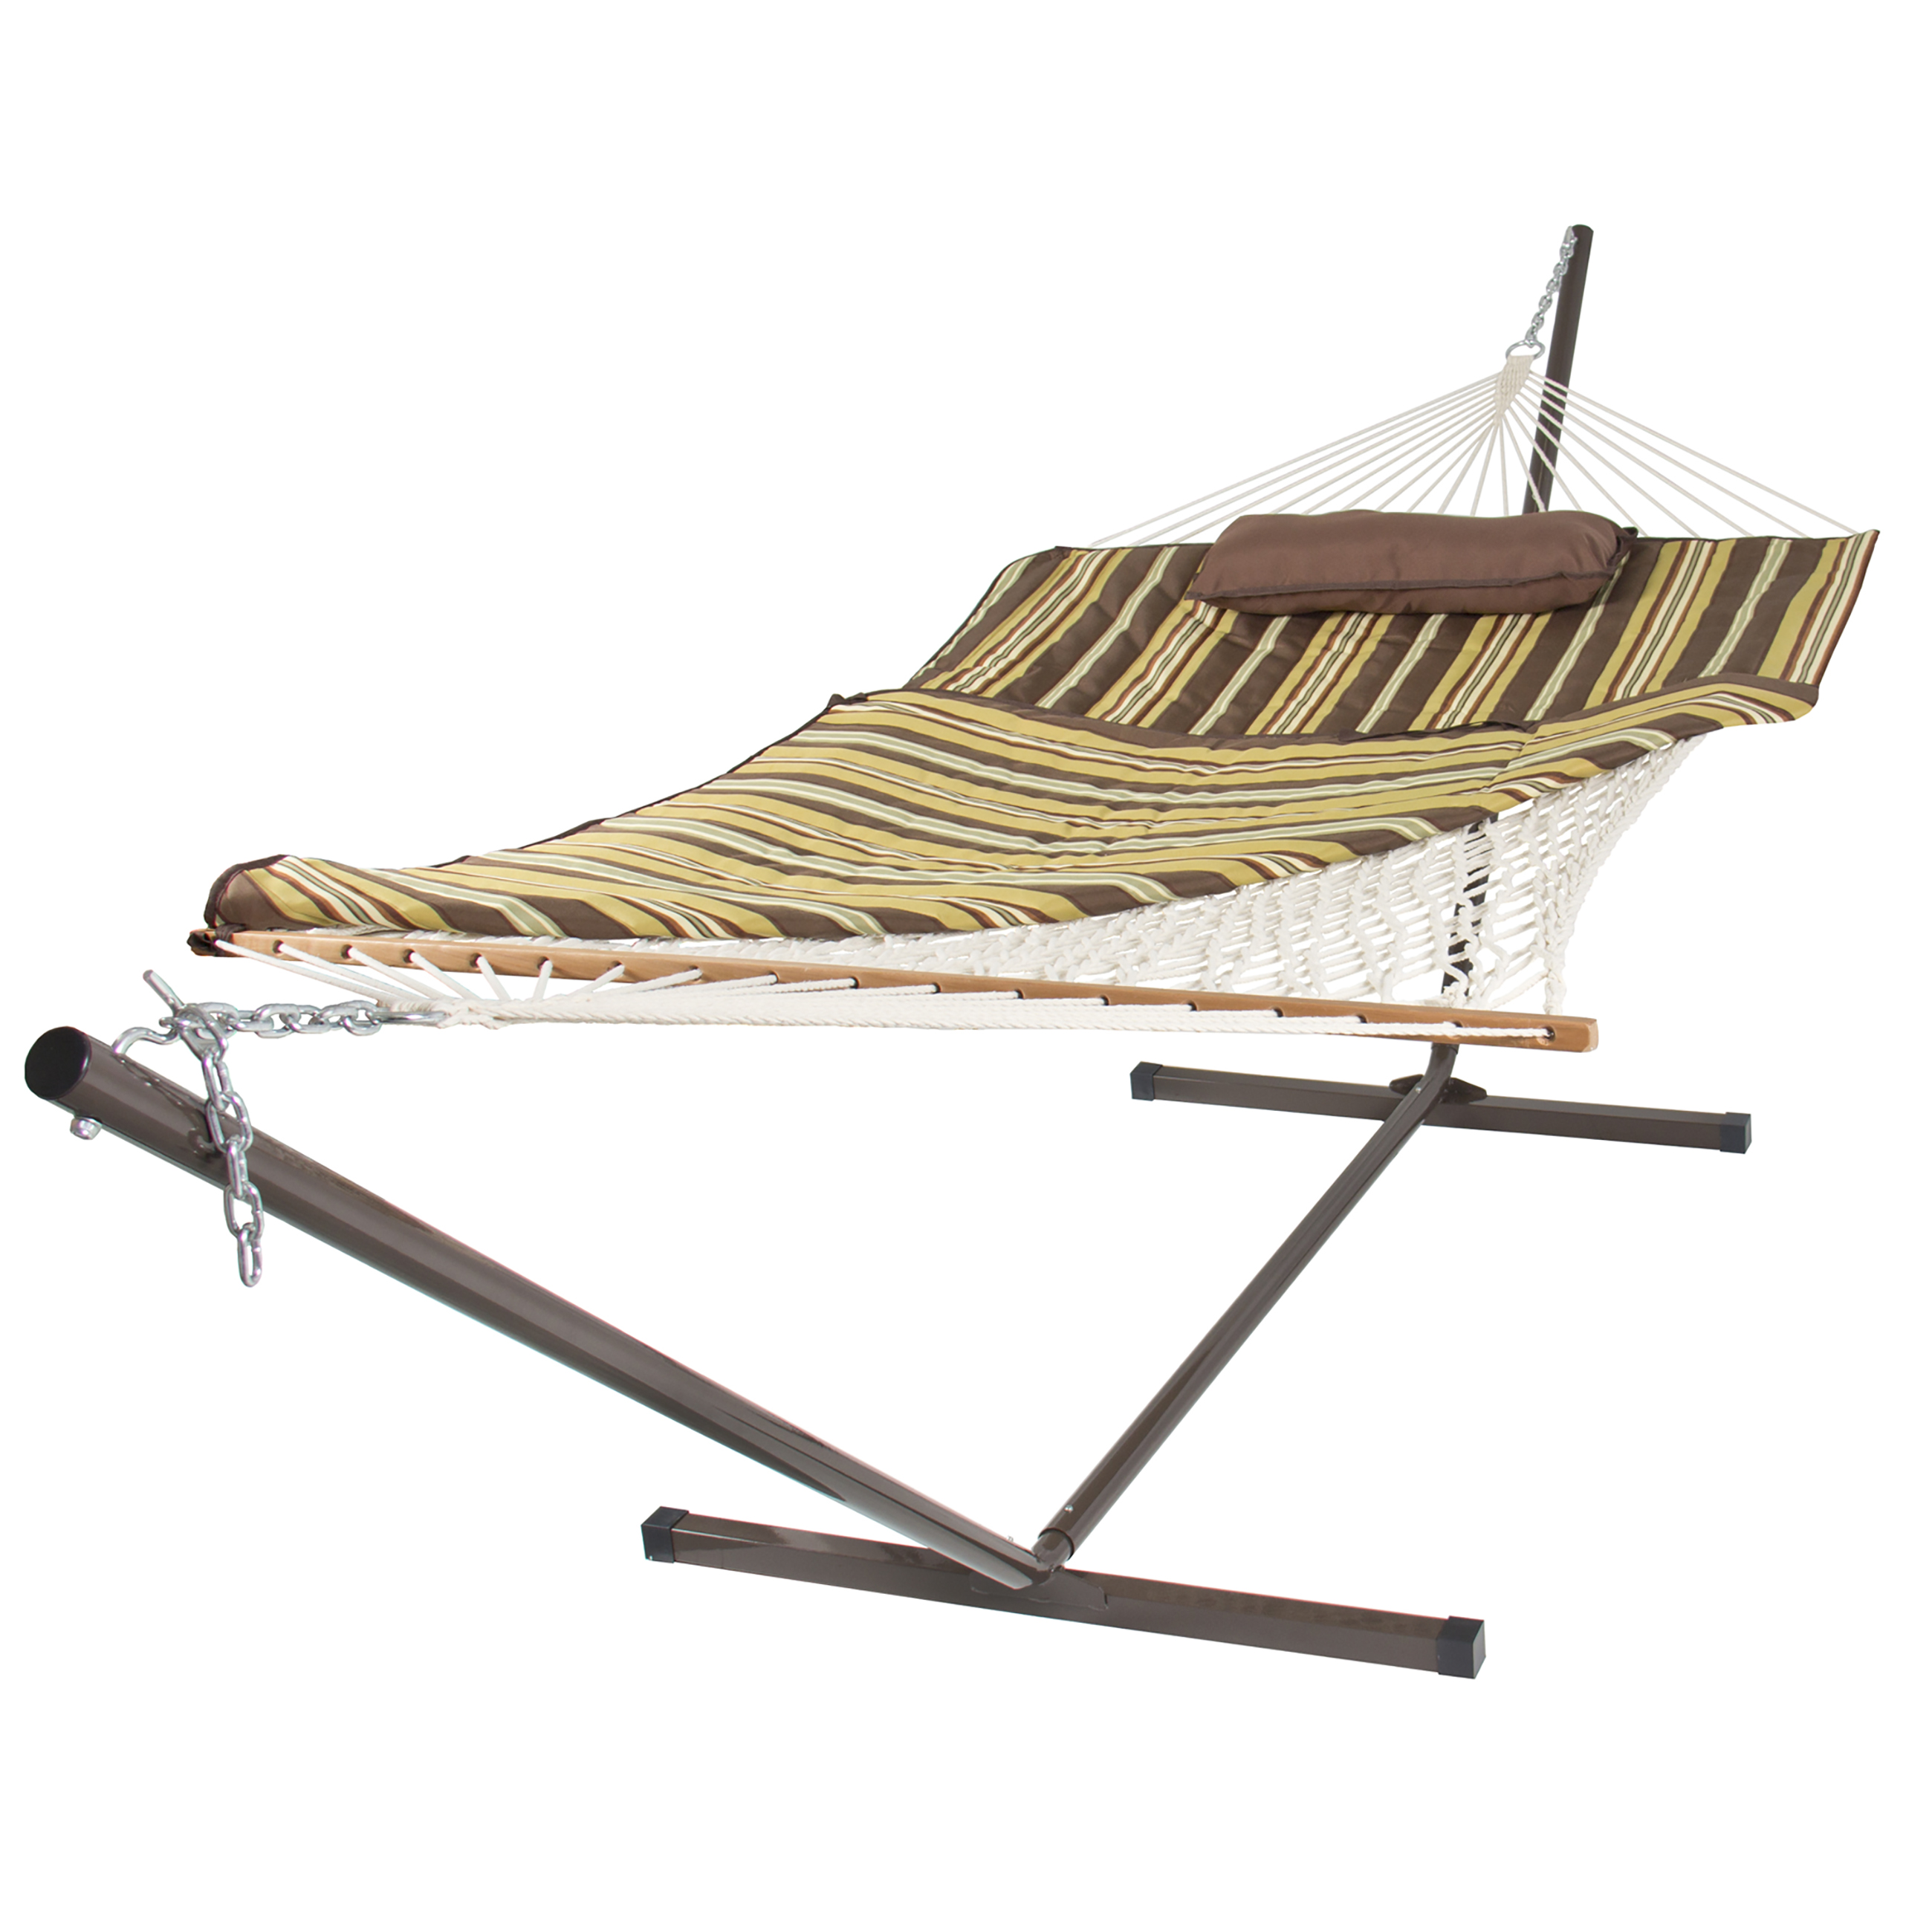 Best Choice Products 12ft Outdoor Cotton 2-Person Double Hammock Set w/ Stand, Pad, Pillow - Brown